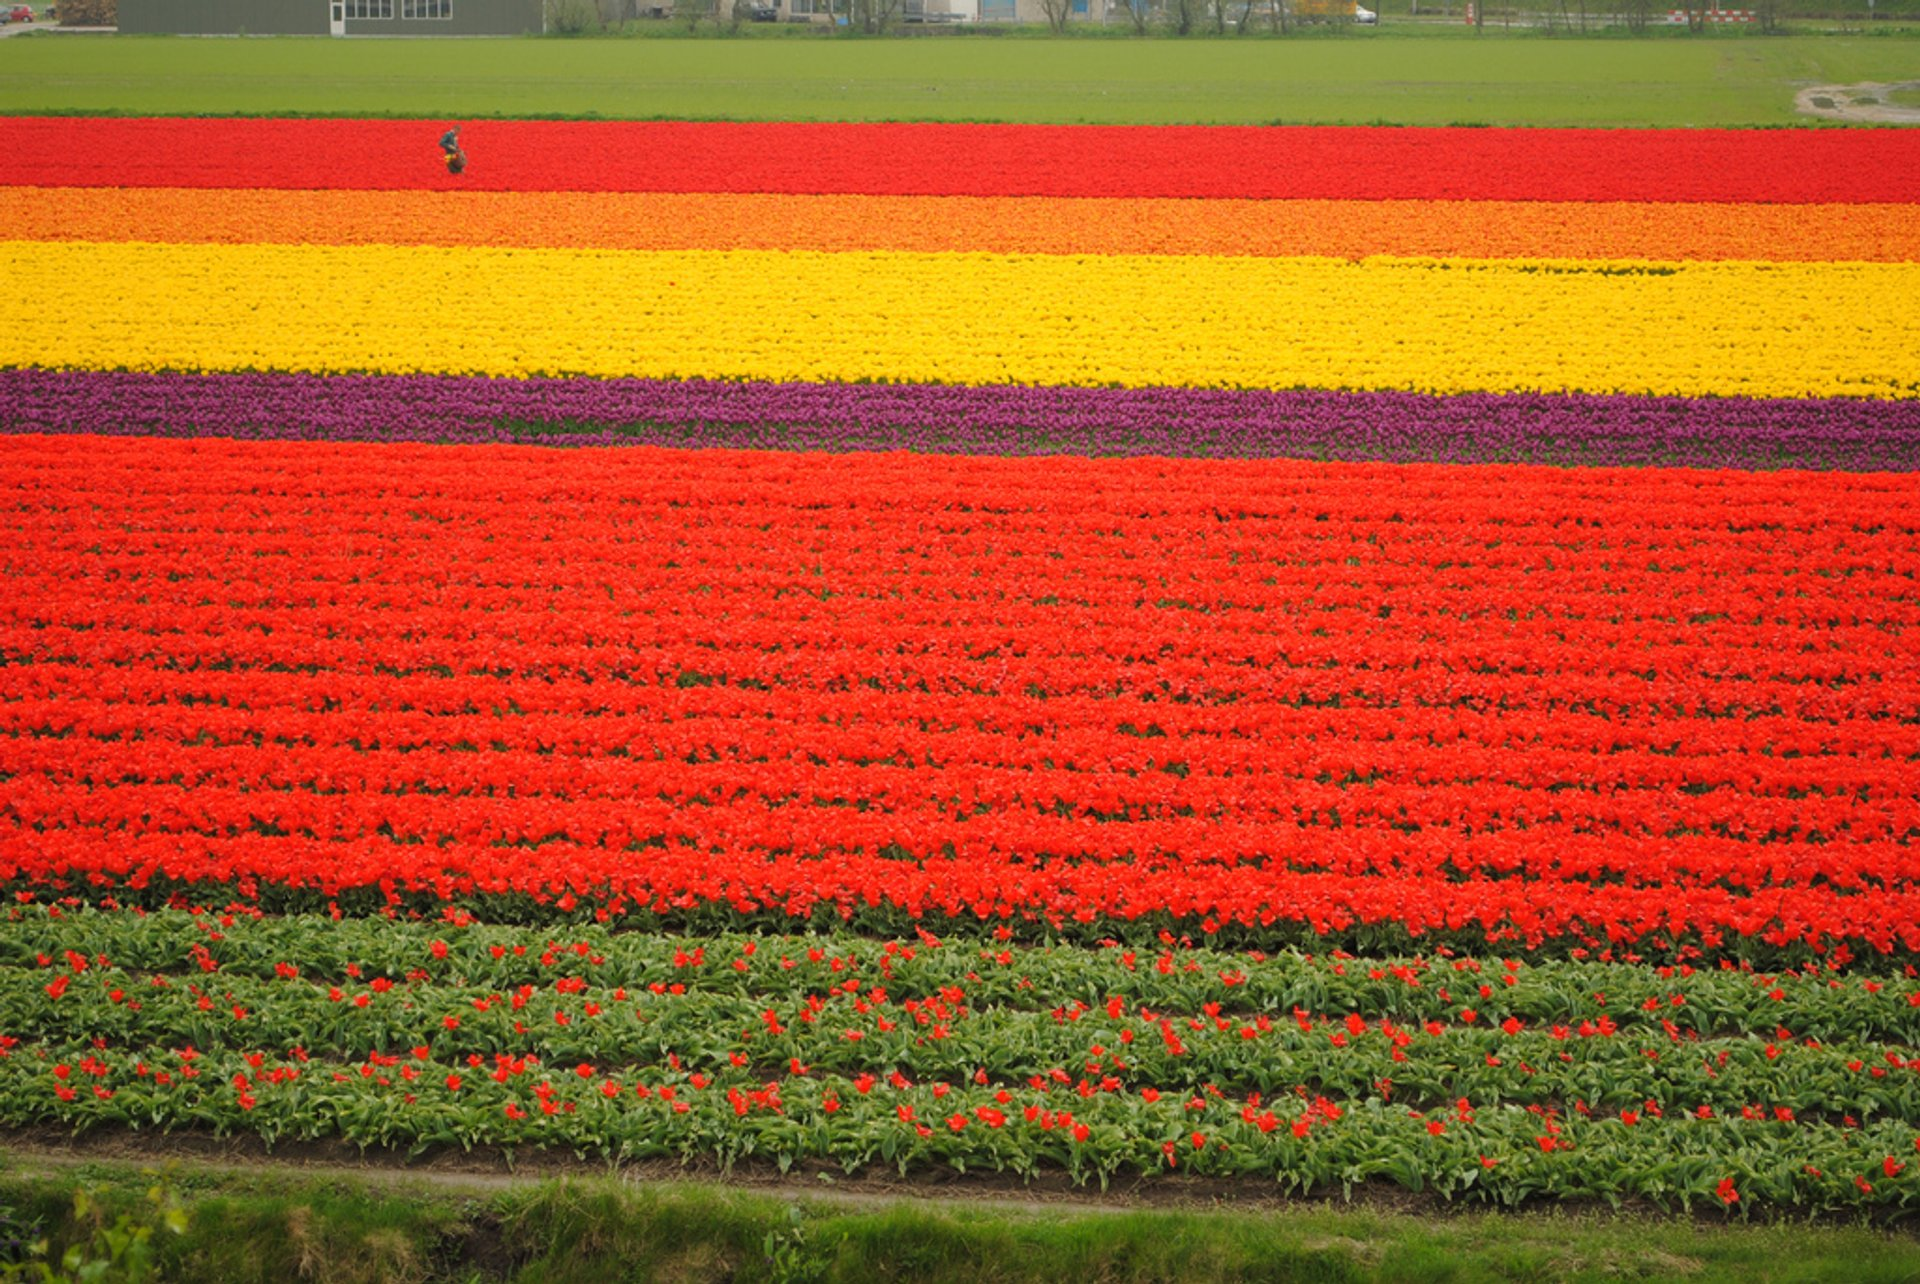 Keukenhof (Garden of Europe) in The Netherlands 2020 - Best Time